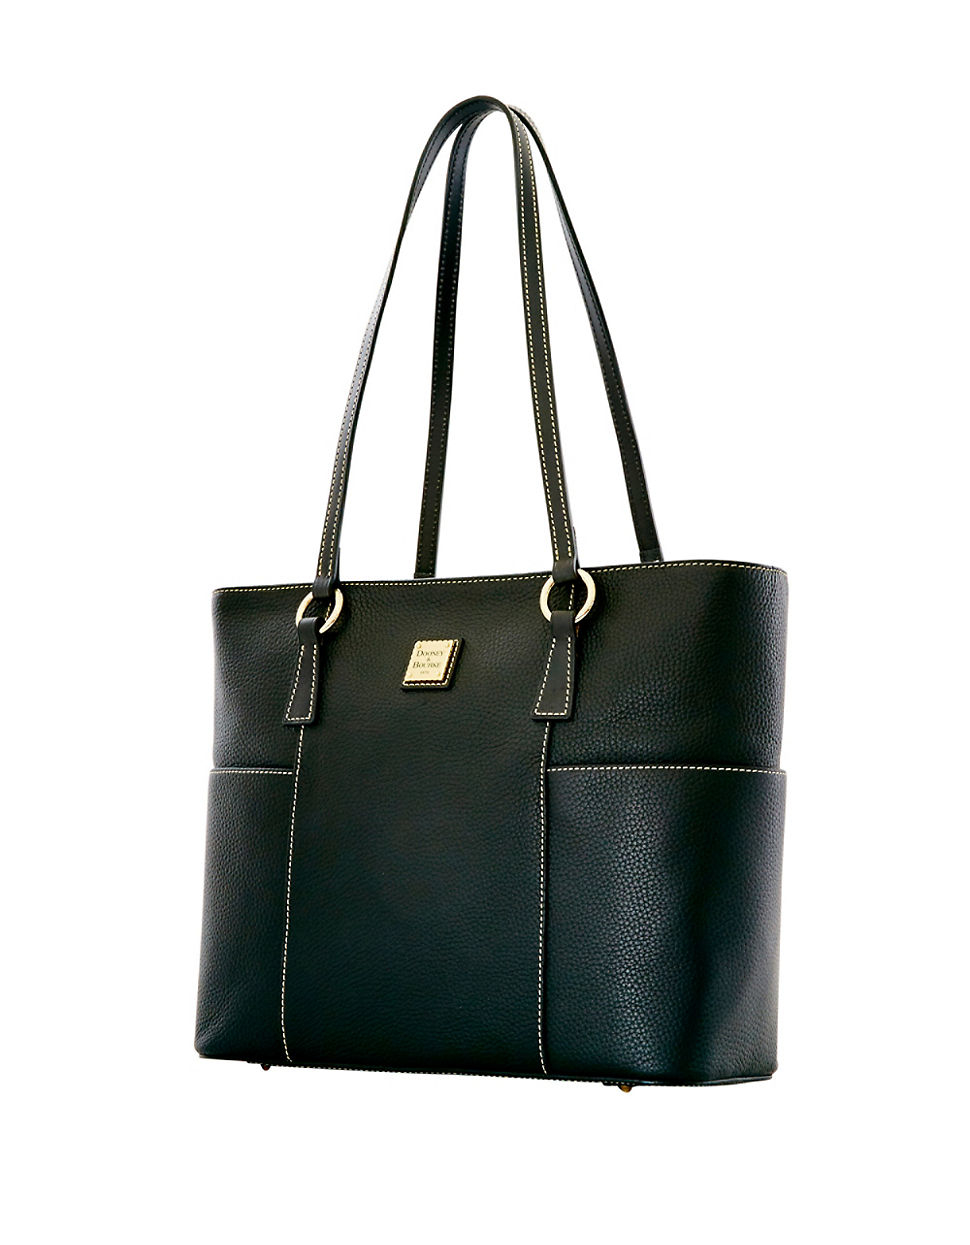 Dooney & bourke Pebbled Leather Shopper Bag in Black | Lyst